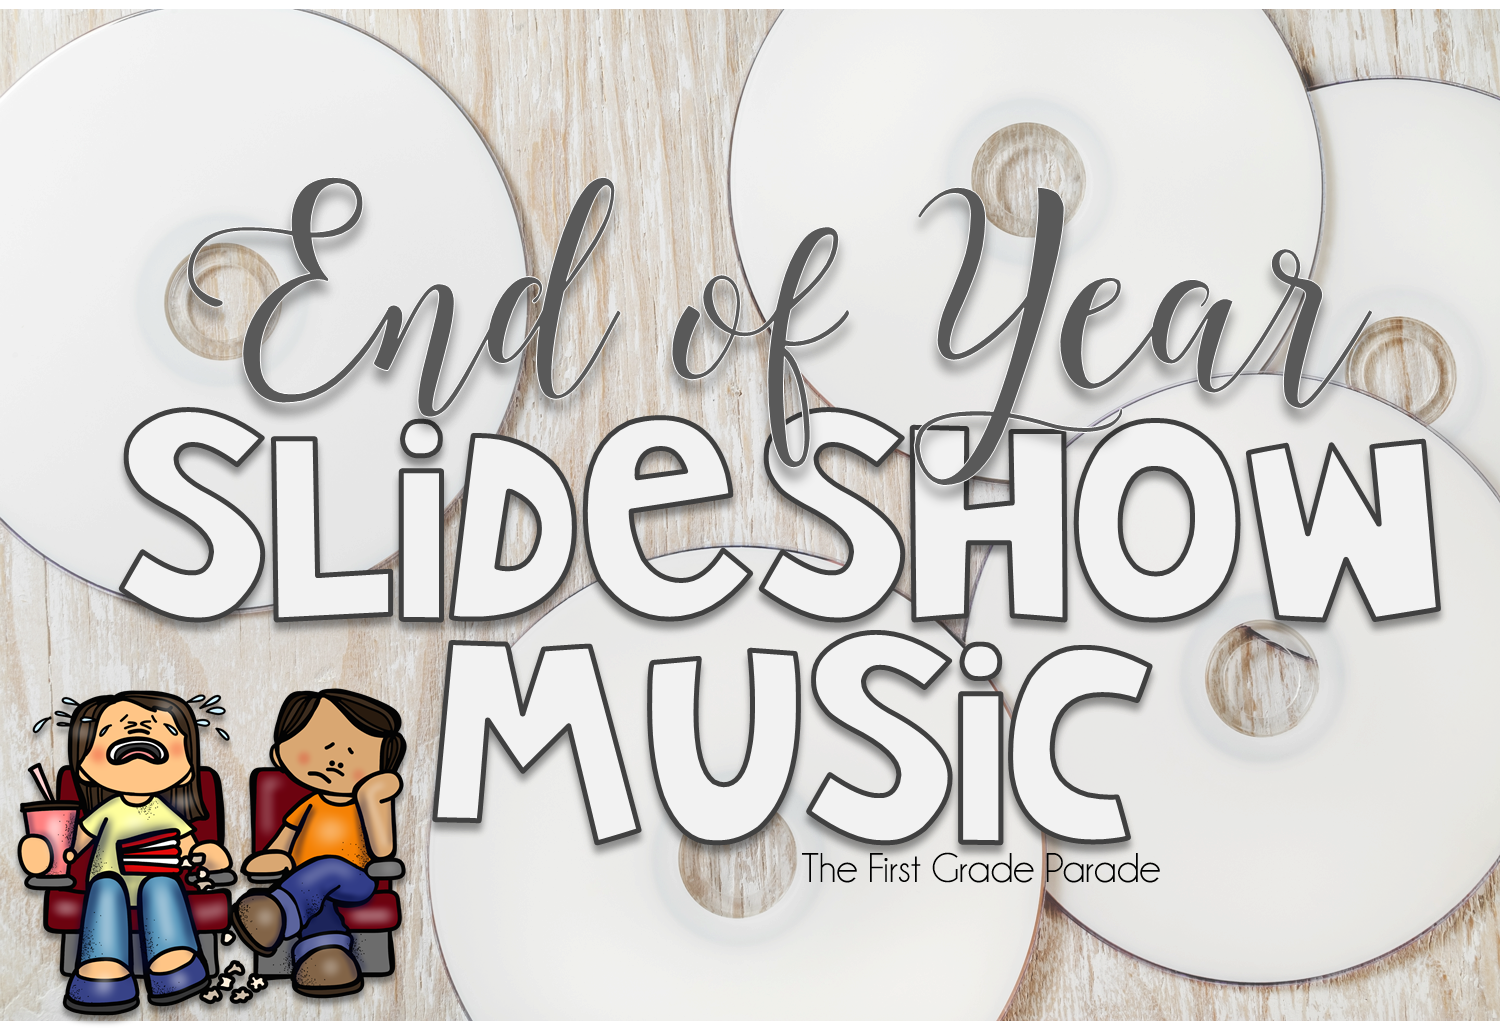 75 End Of Year Slideshow Songs